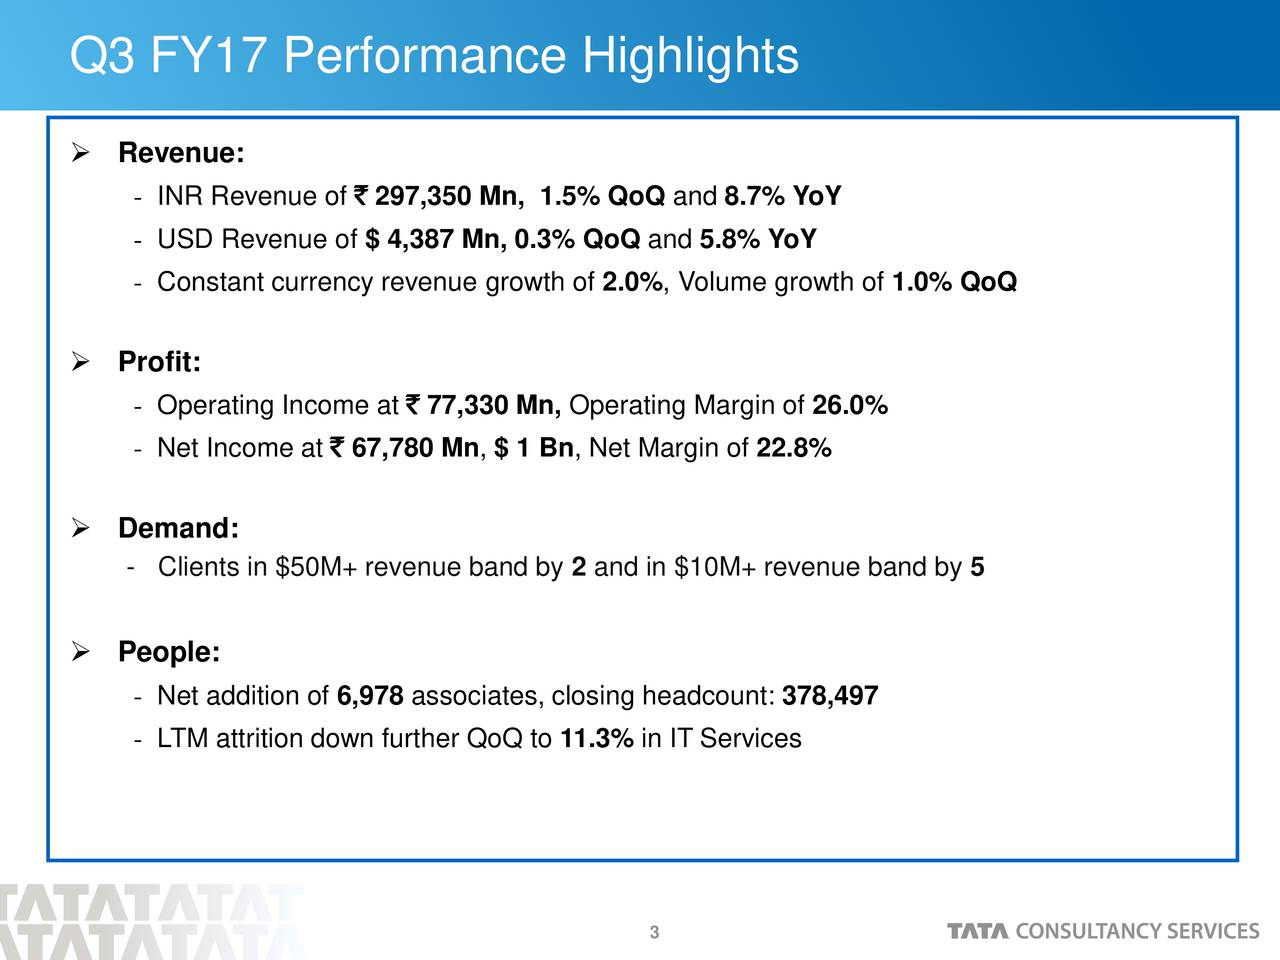 Revenue: - INR Revenue of ` 297,350 Mn, 1.5% QoQ and 8.7% YoY - USD Revenue of $ 4,387 Mn, 0.3% QoQ and 5.8% YoY - Constant currency revenue growth of 2.0%, Volume growth of 1.0% QoQ Profit: - Operating Income at ` 77,330 Mn, Operating Margin of 26.0% - Net Income at ` 67,780 Mn, $ 1 Bn, Net Margin of 22.8% Demand: - Clients in $50M+ revenue band by 2 and in $10M+ revenue band by 5 People: - Net addition of 6,978 associates, closing headcount: 378,497 - LTM attrition down further QoQ to 11.3% in IT Services 3